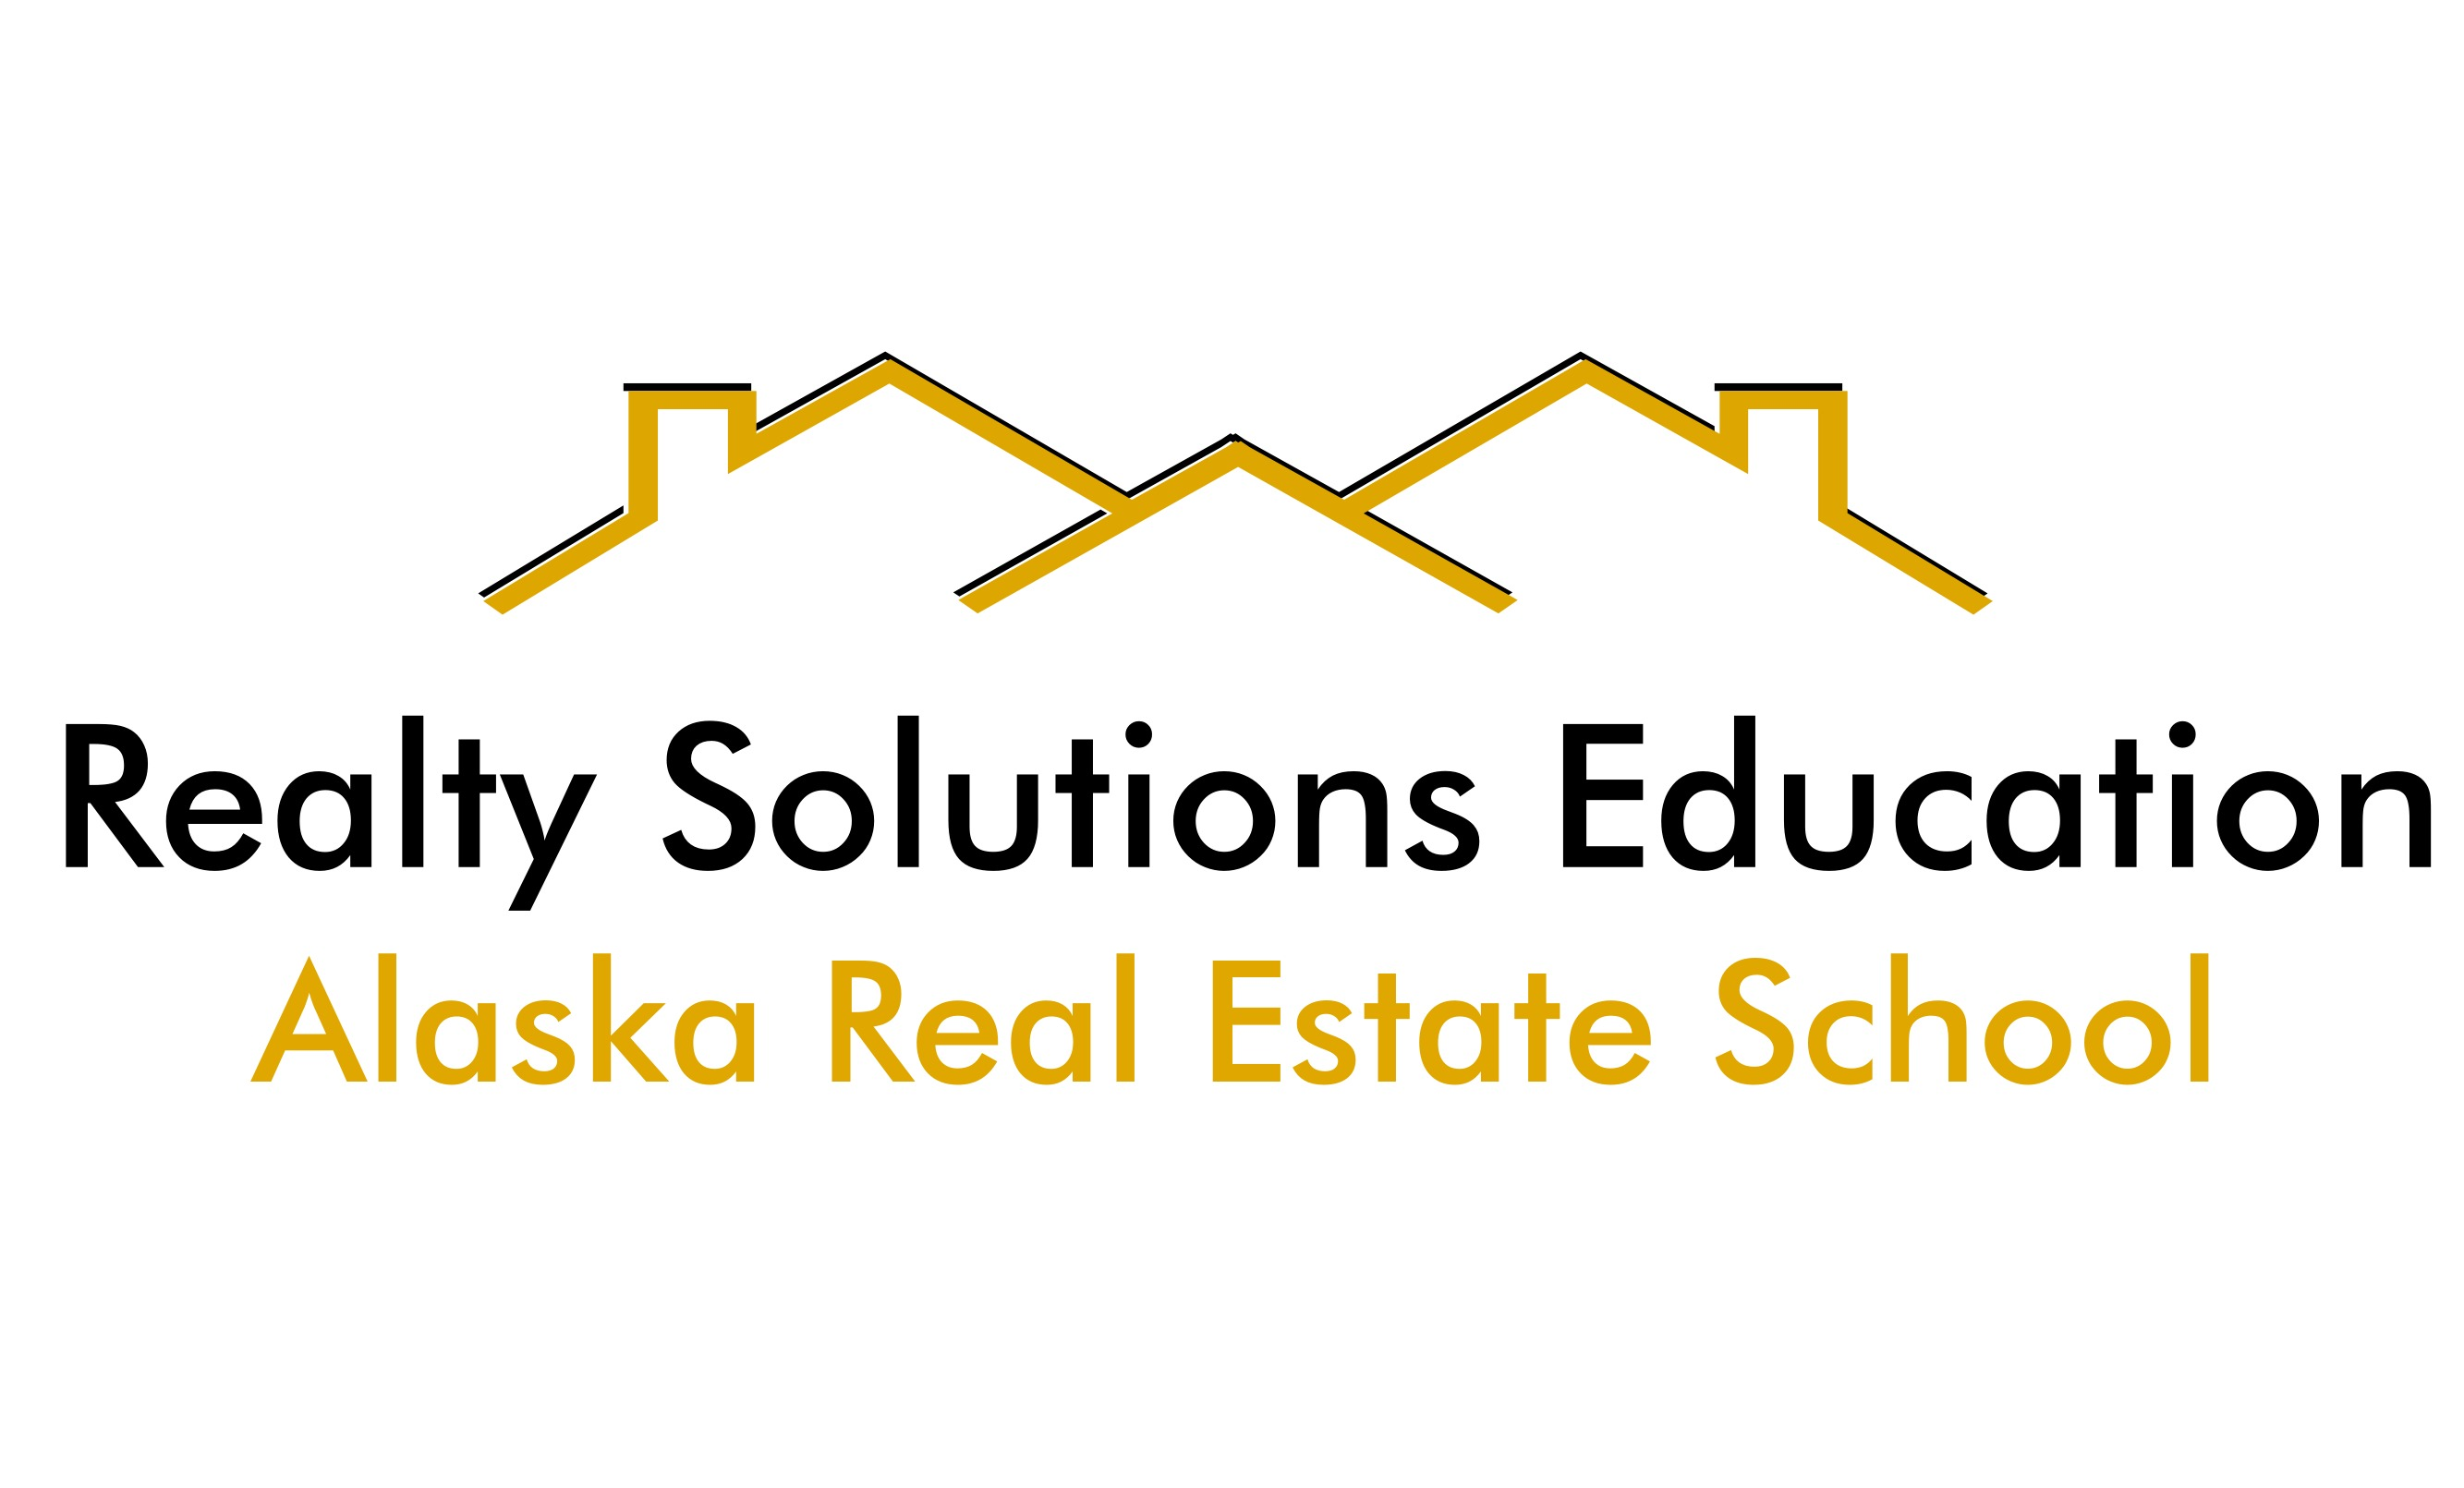 Realty Solutions Education